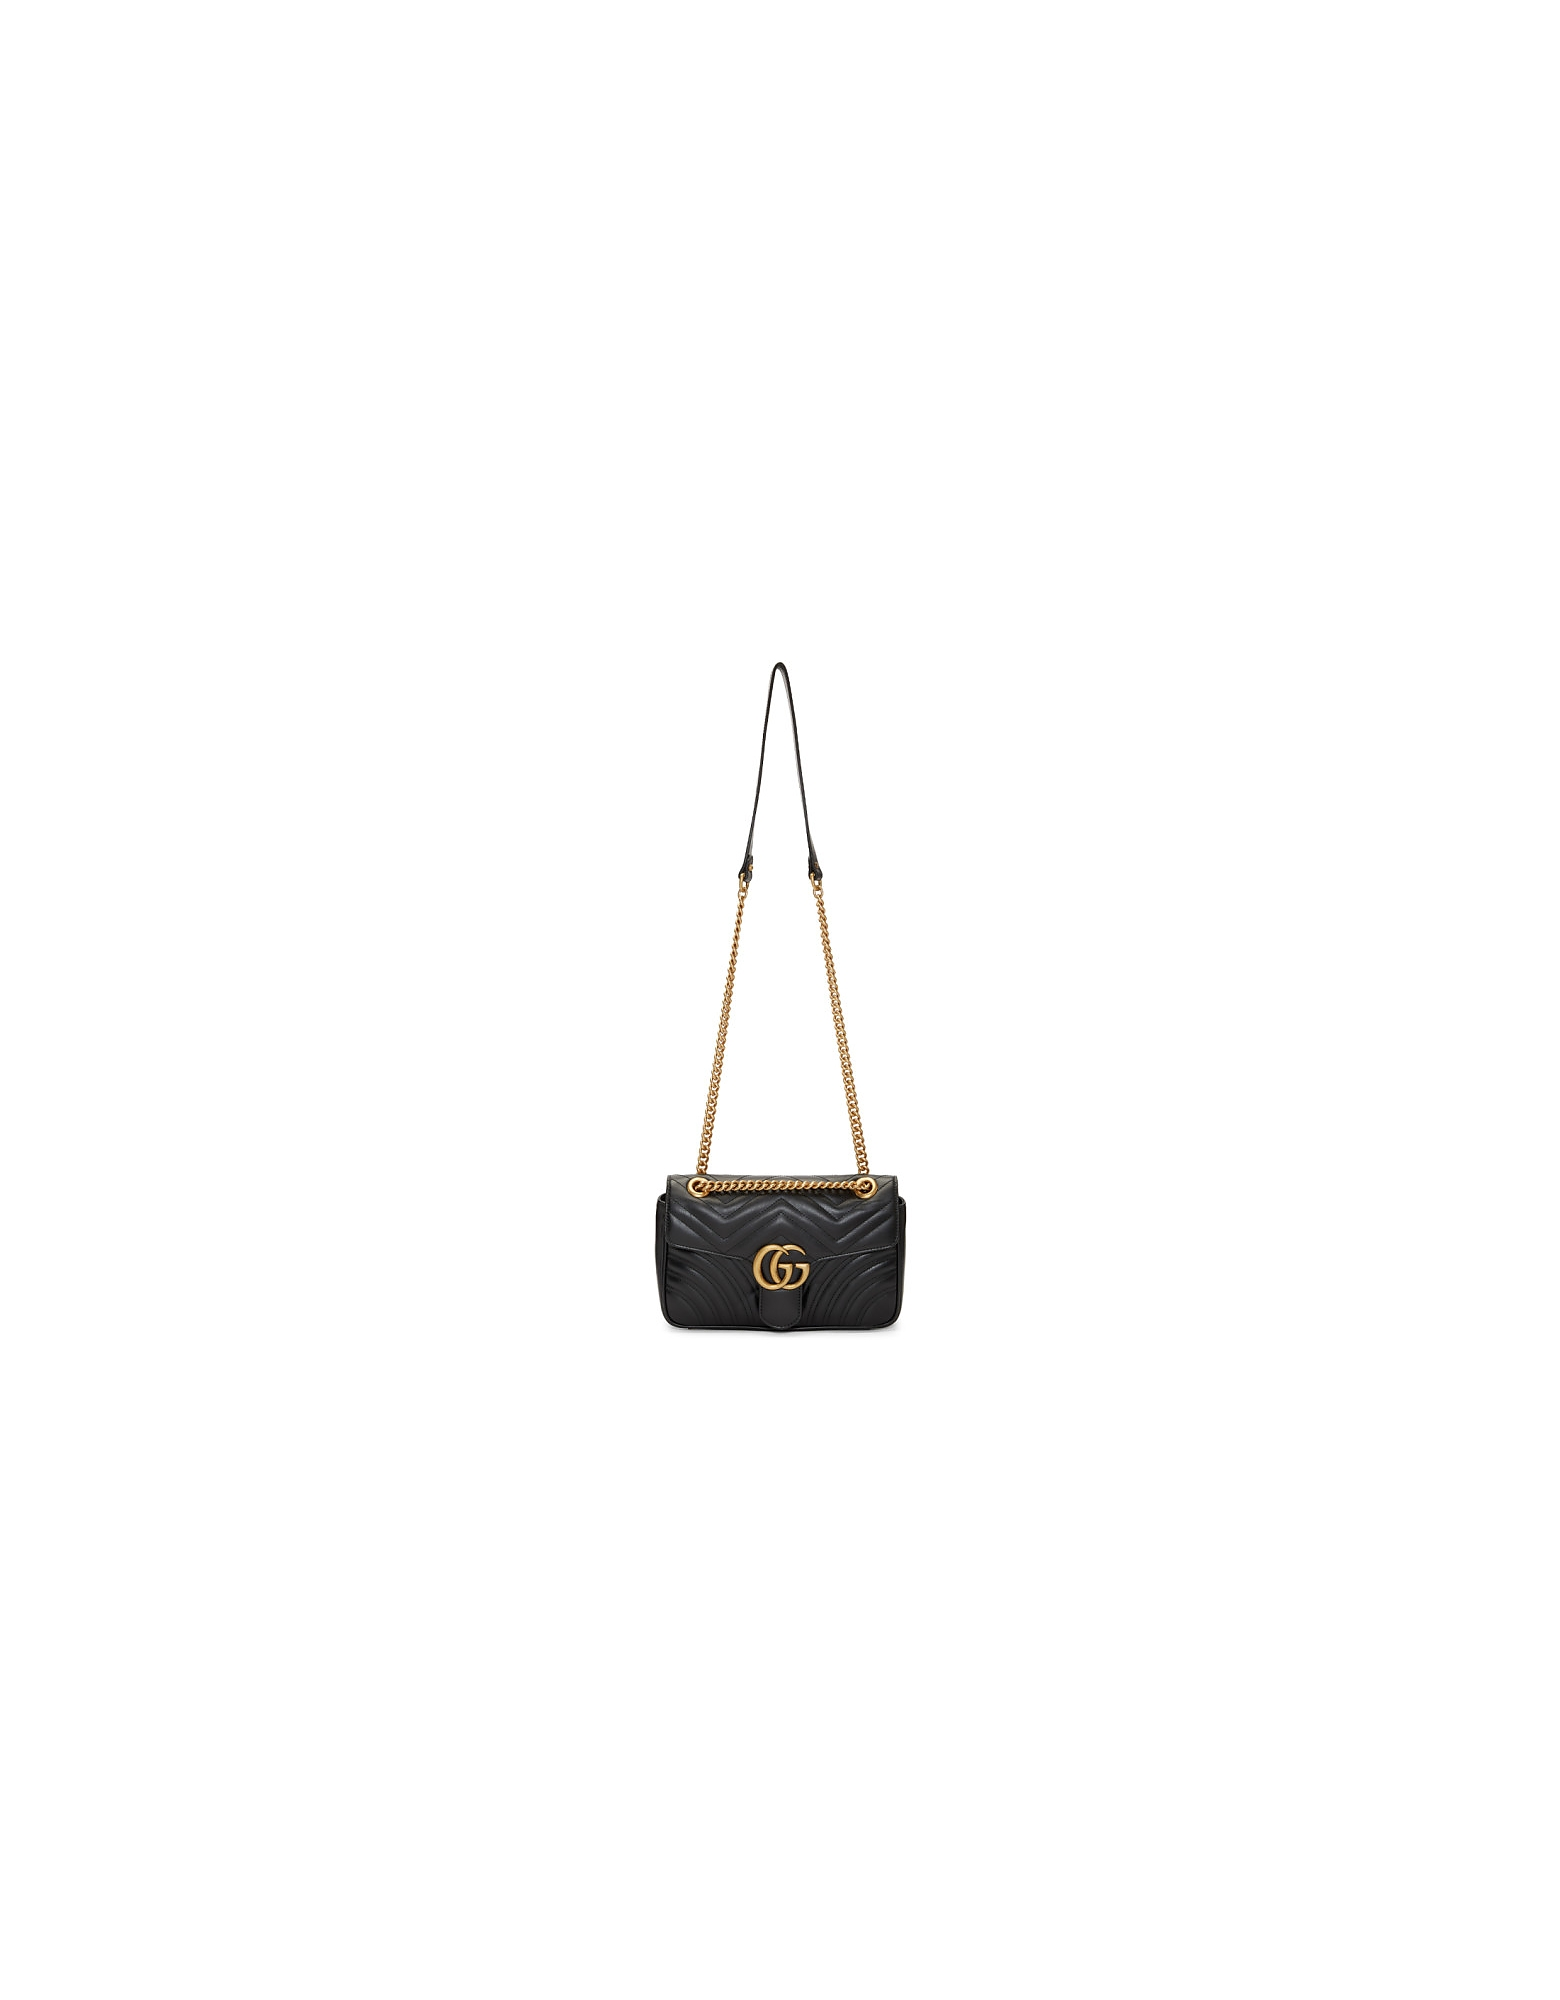 Gucci Designer Handbags, Black Small Marmont 2.0 Bag